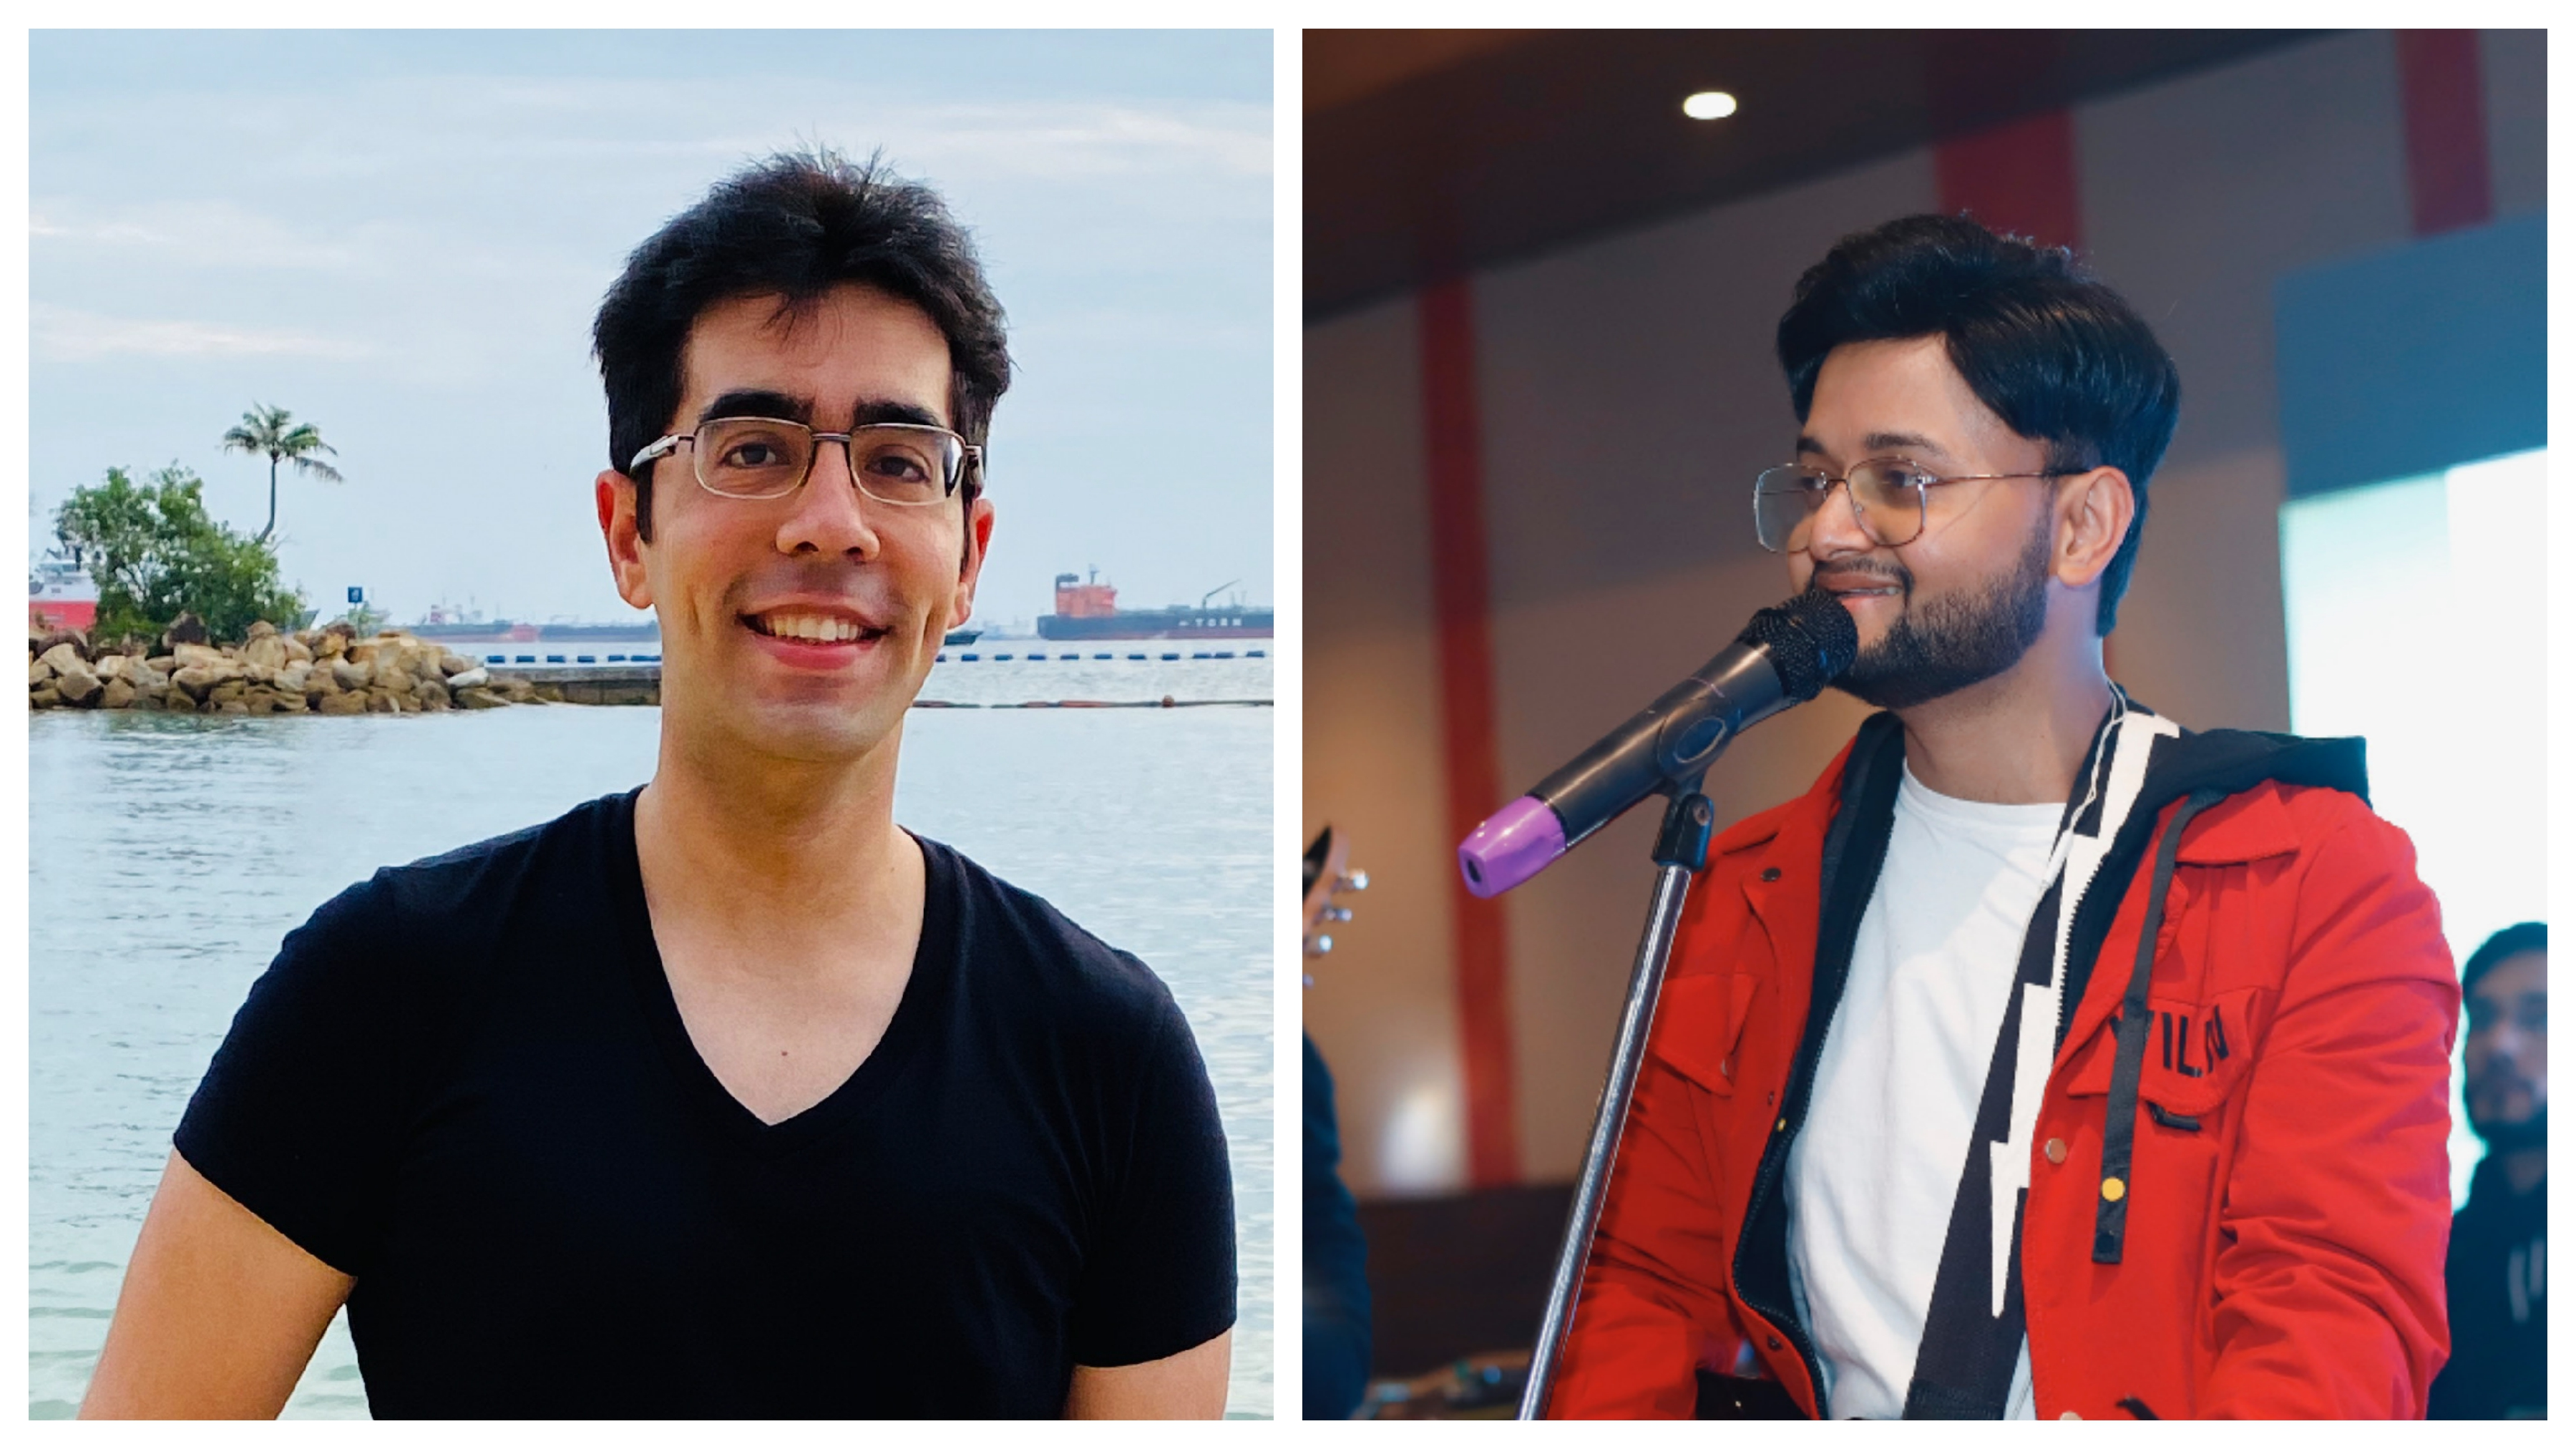 Tanuj and Ajay connected via Instagram created this song over WhatsApp calls and chats.